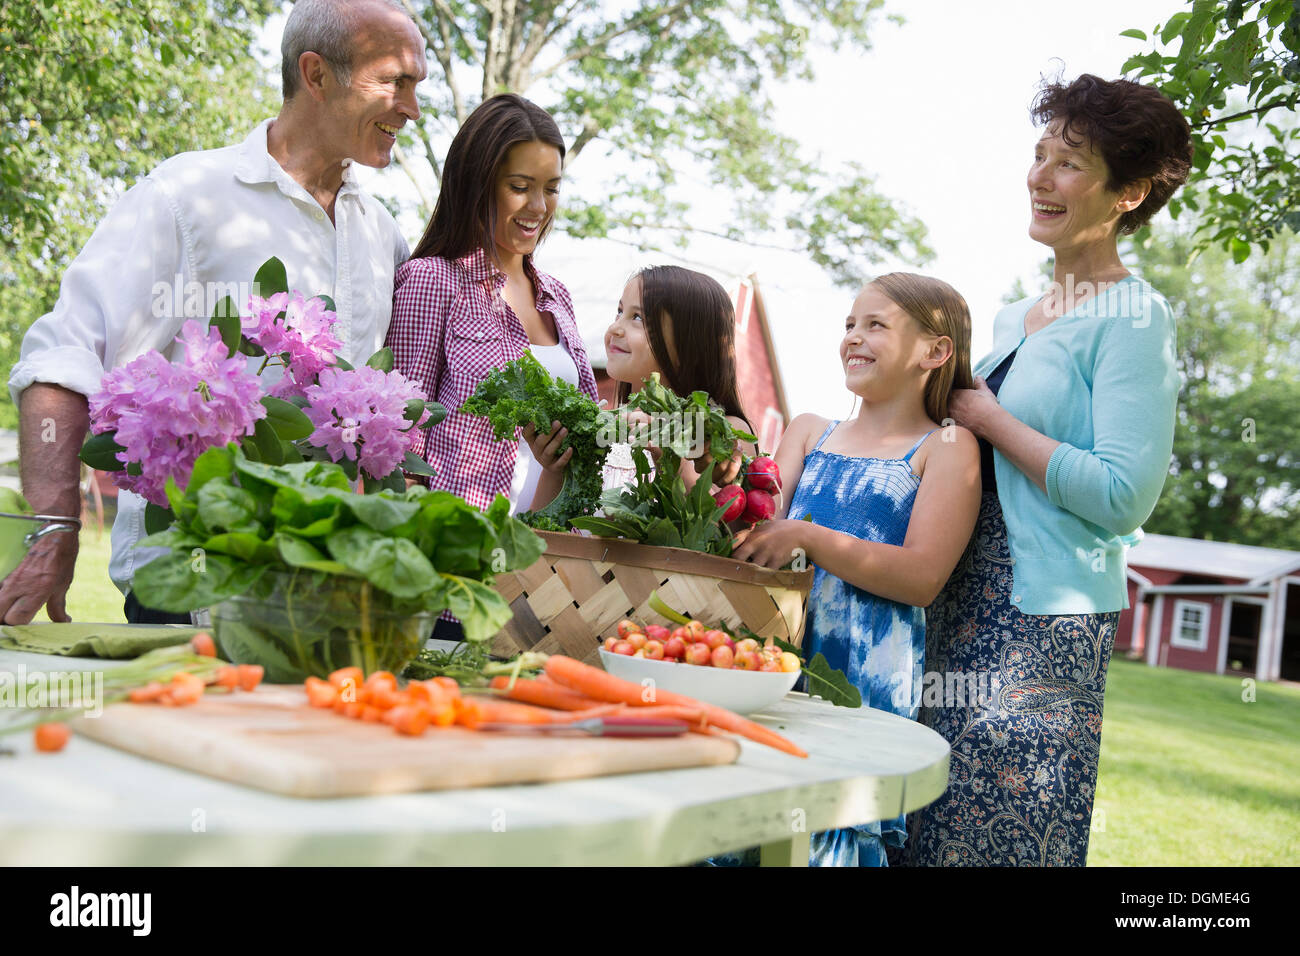 Family party. A table laid with salads and fresh fruits and vegetables. Parents and children. - Stock Image